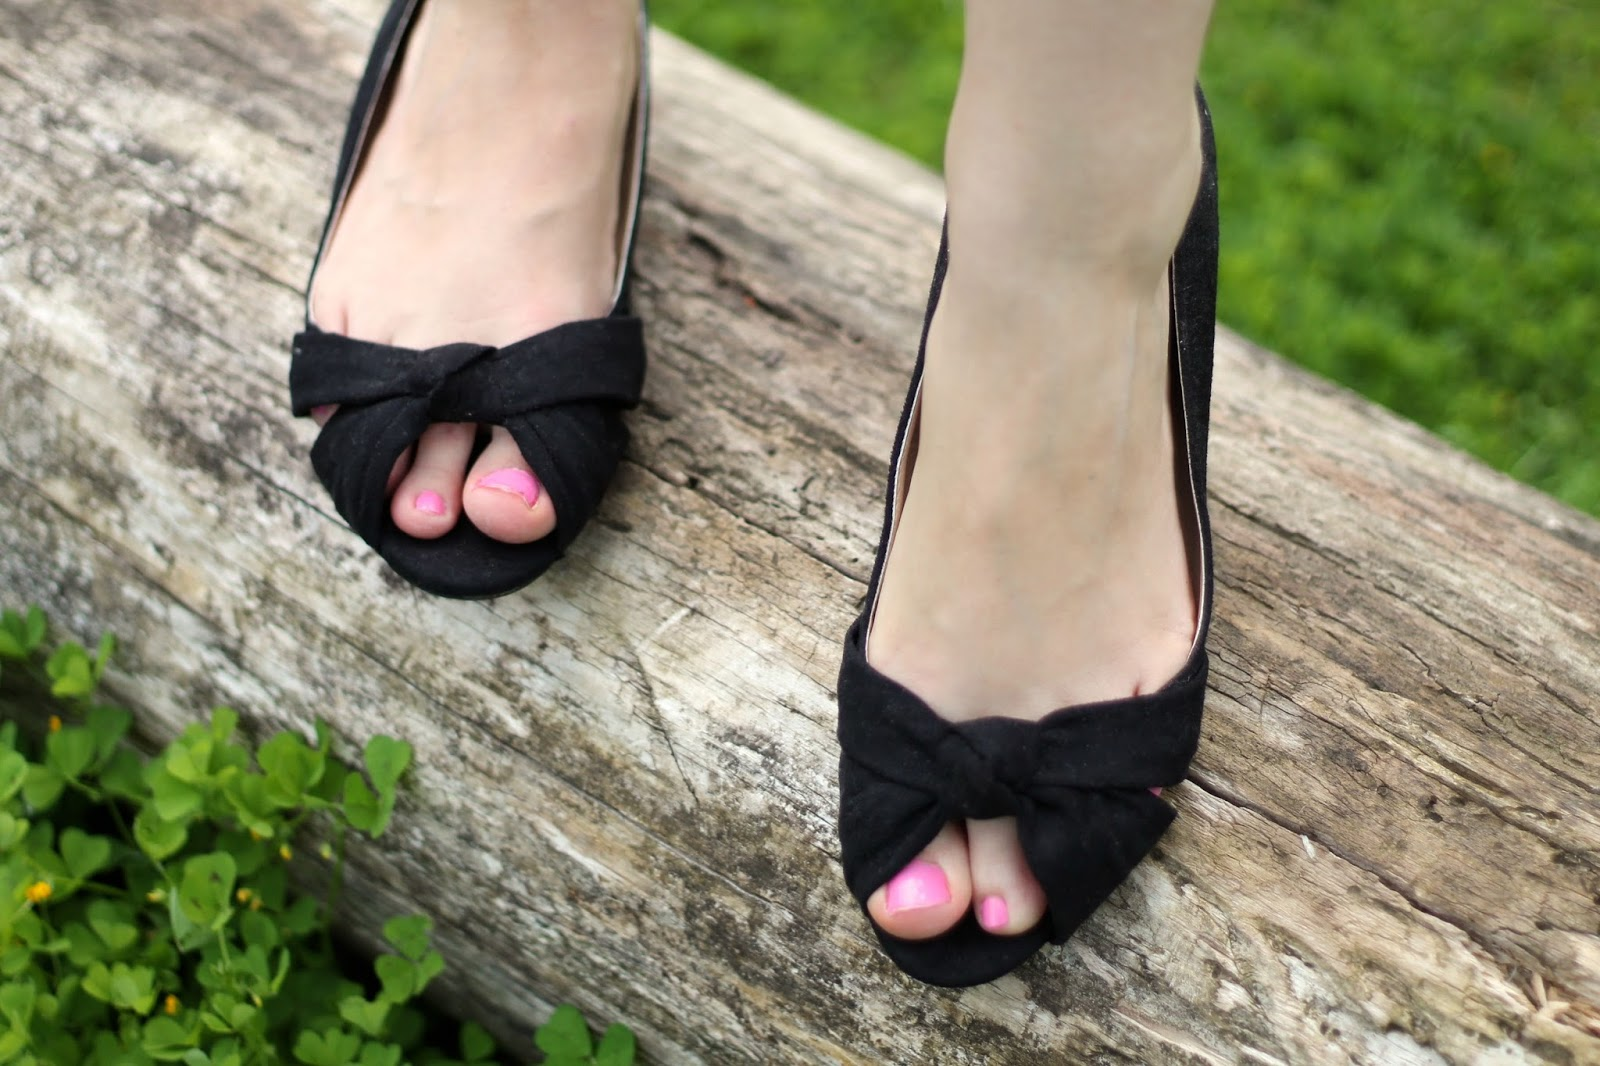 Pin-up ballet pumps